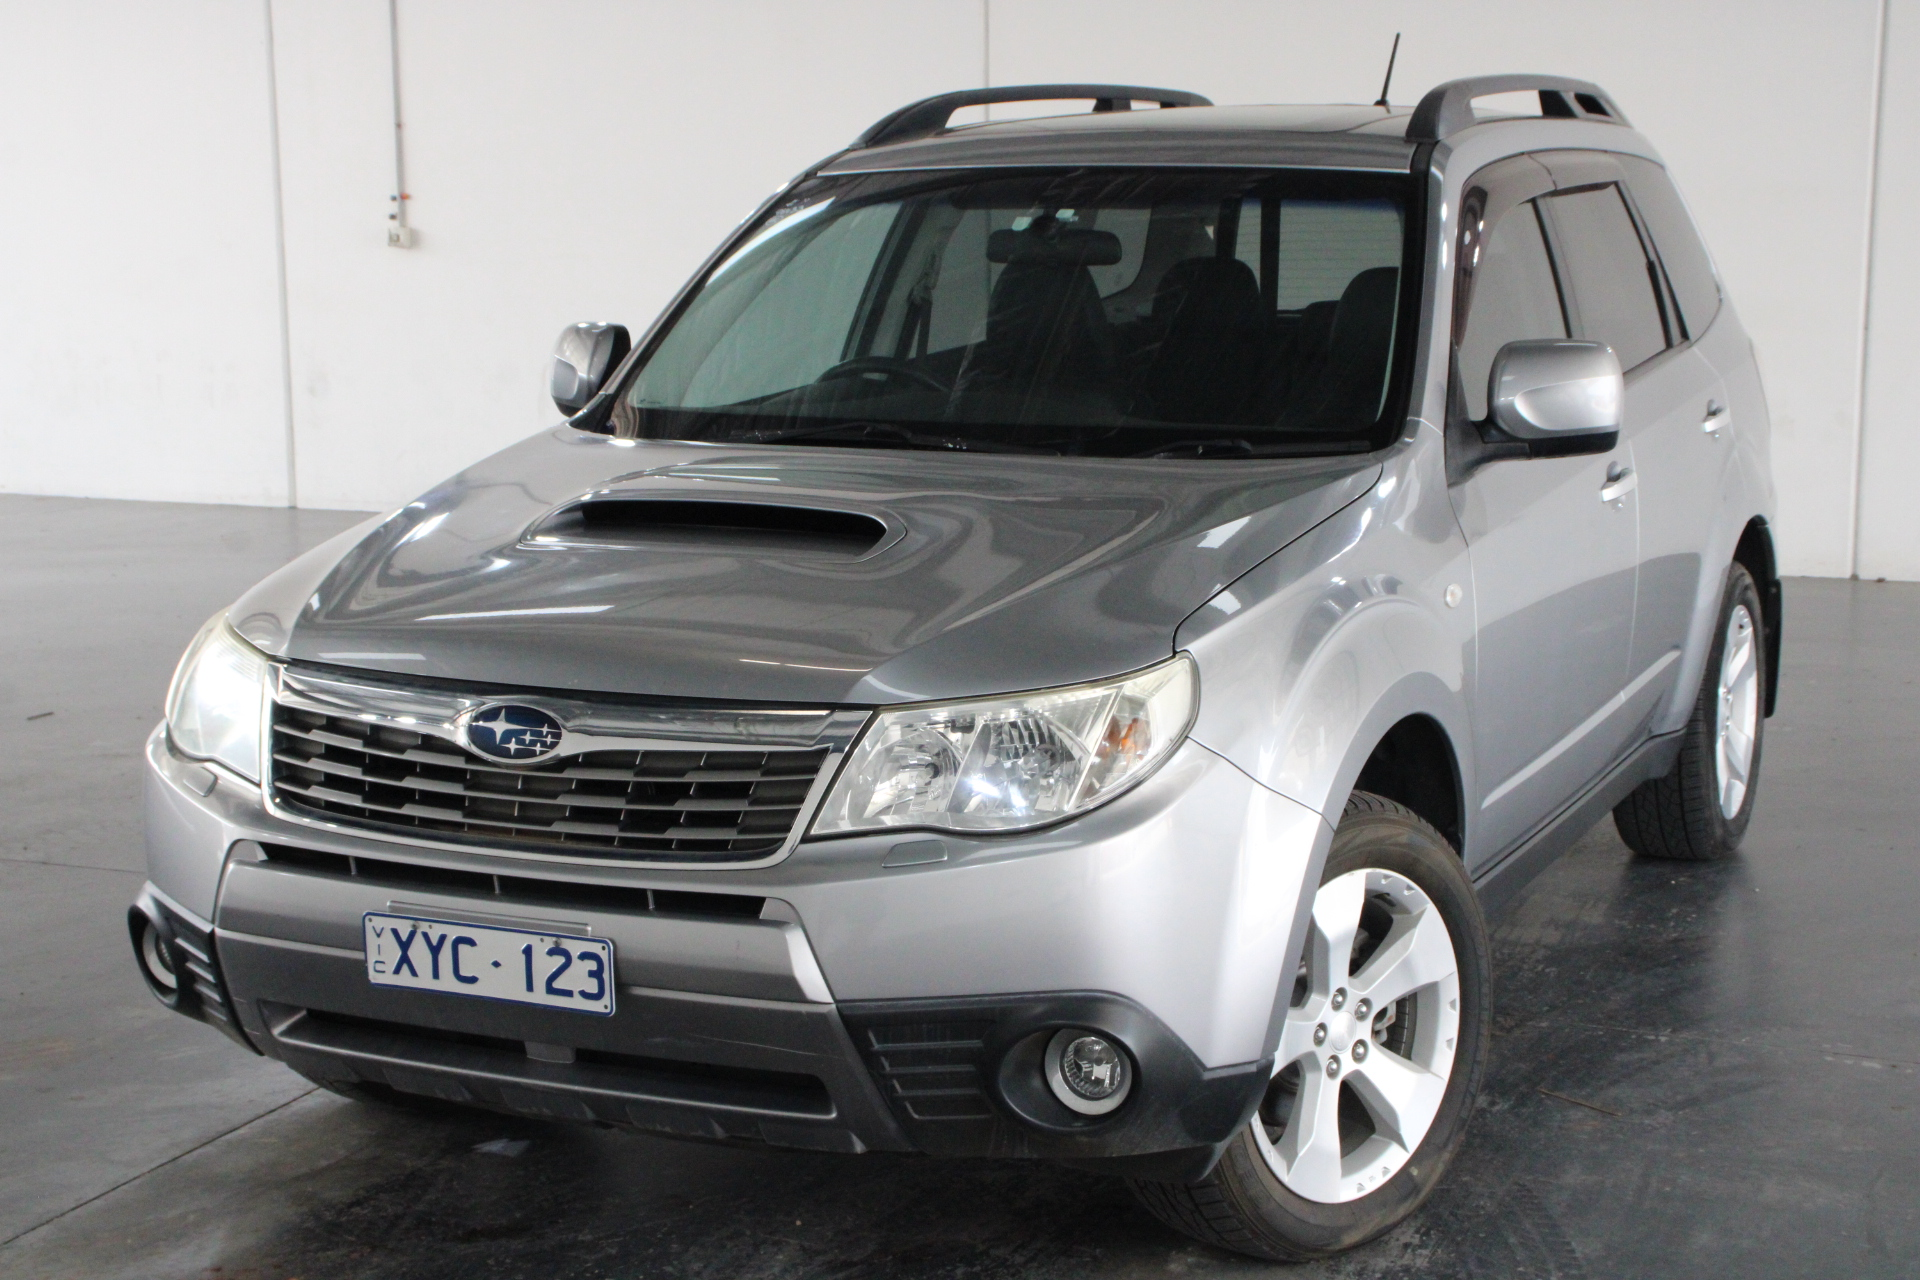 2010 Subaru Forester 2.0D Premium S3 Turbo Diesel Manual Wagon